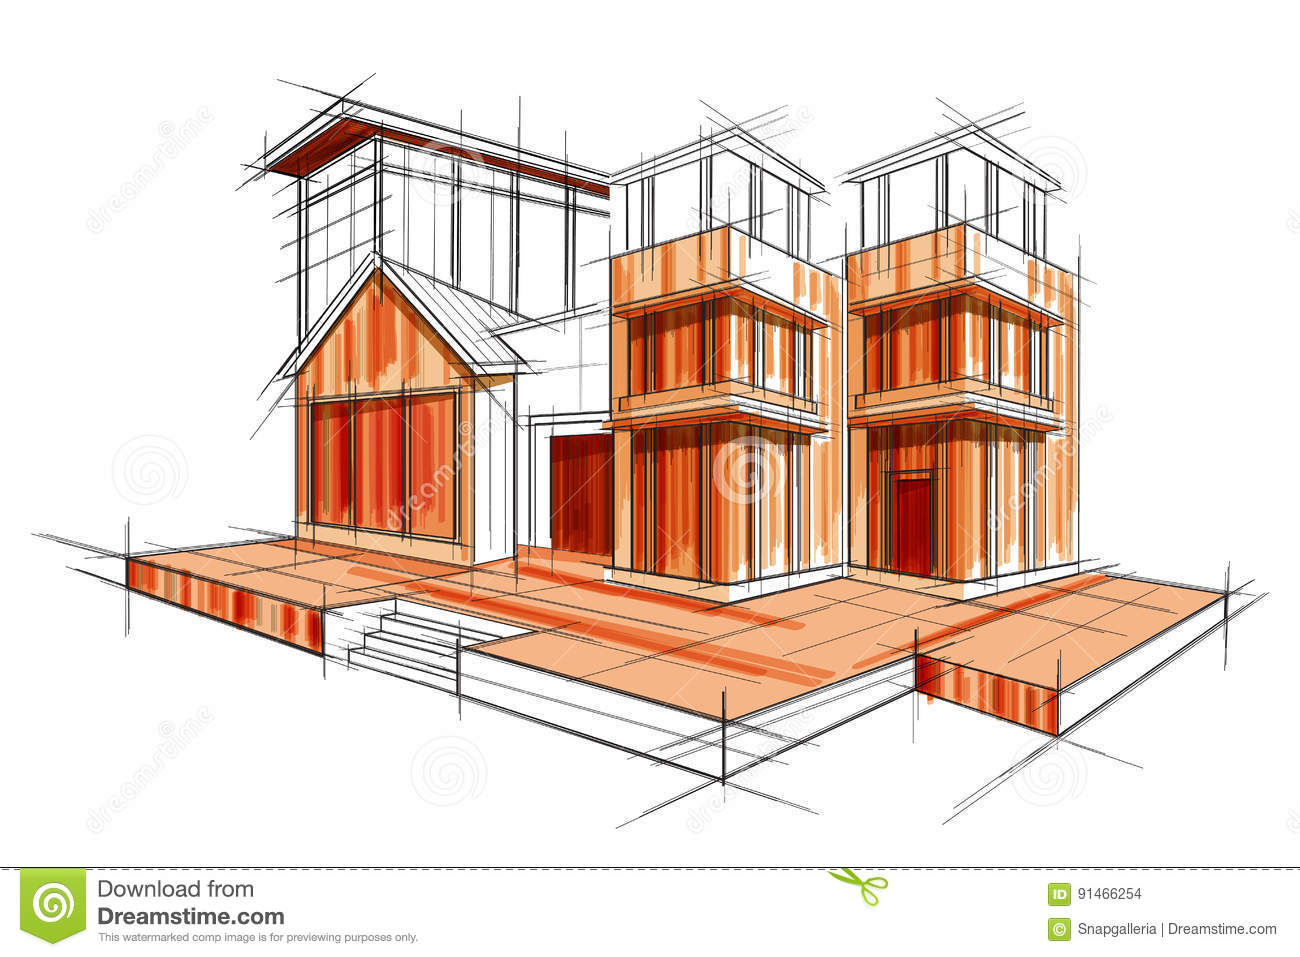 Sketch of exterior building draft blueprint design stock vector sketch of exterior building draft blueprint design illustration doodle malvernweather Images